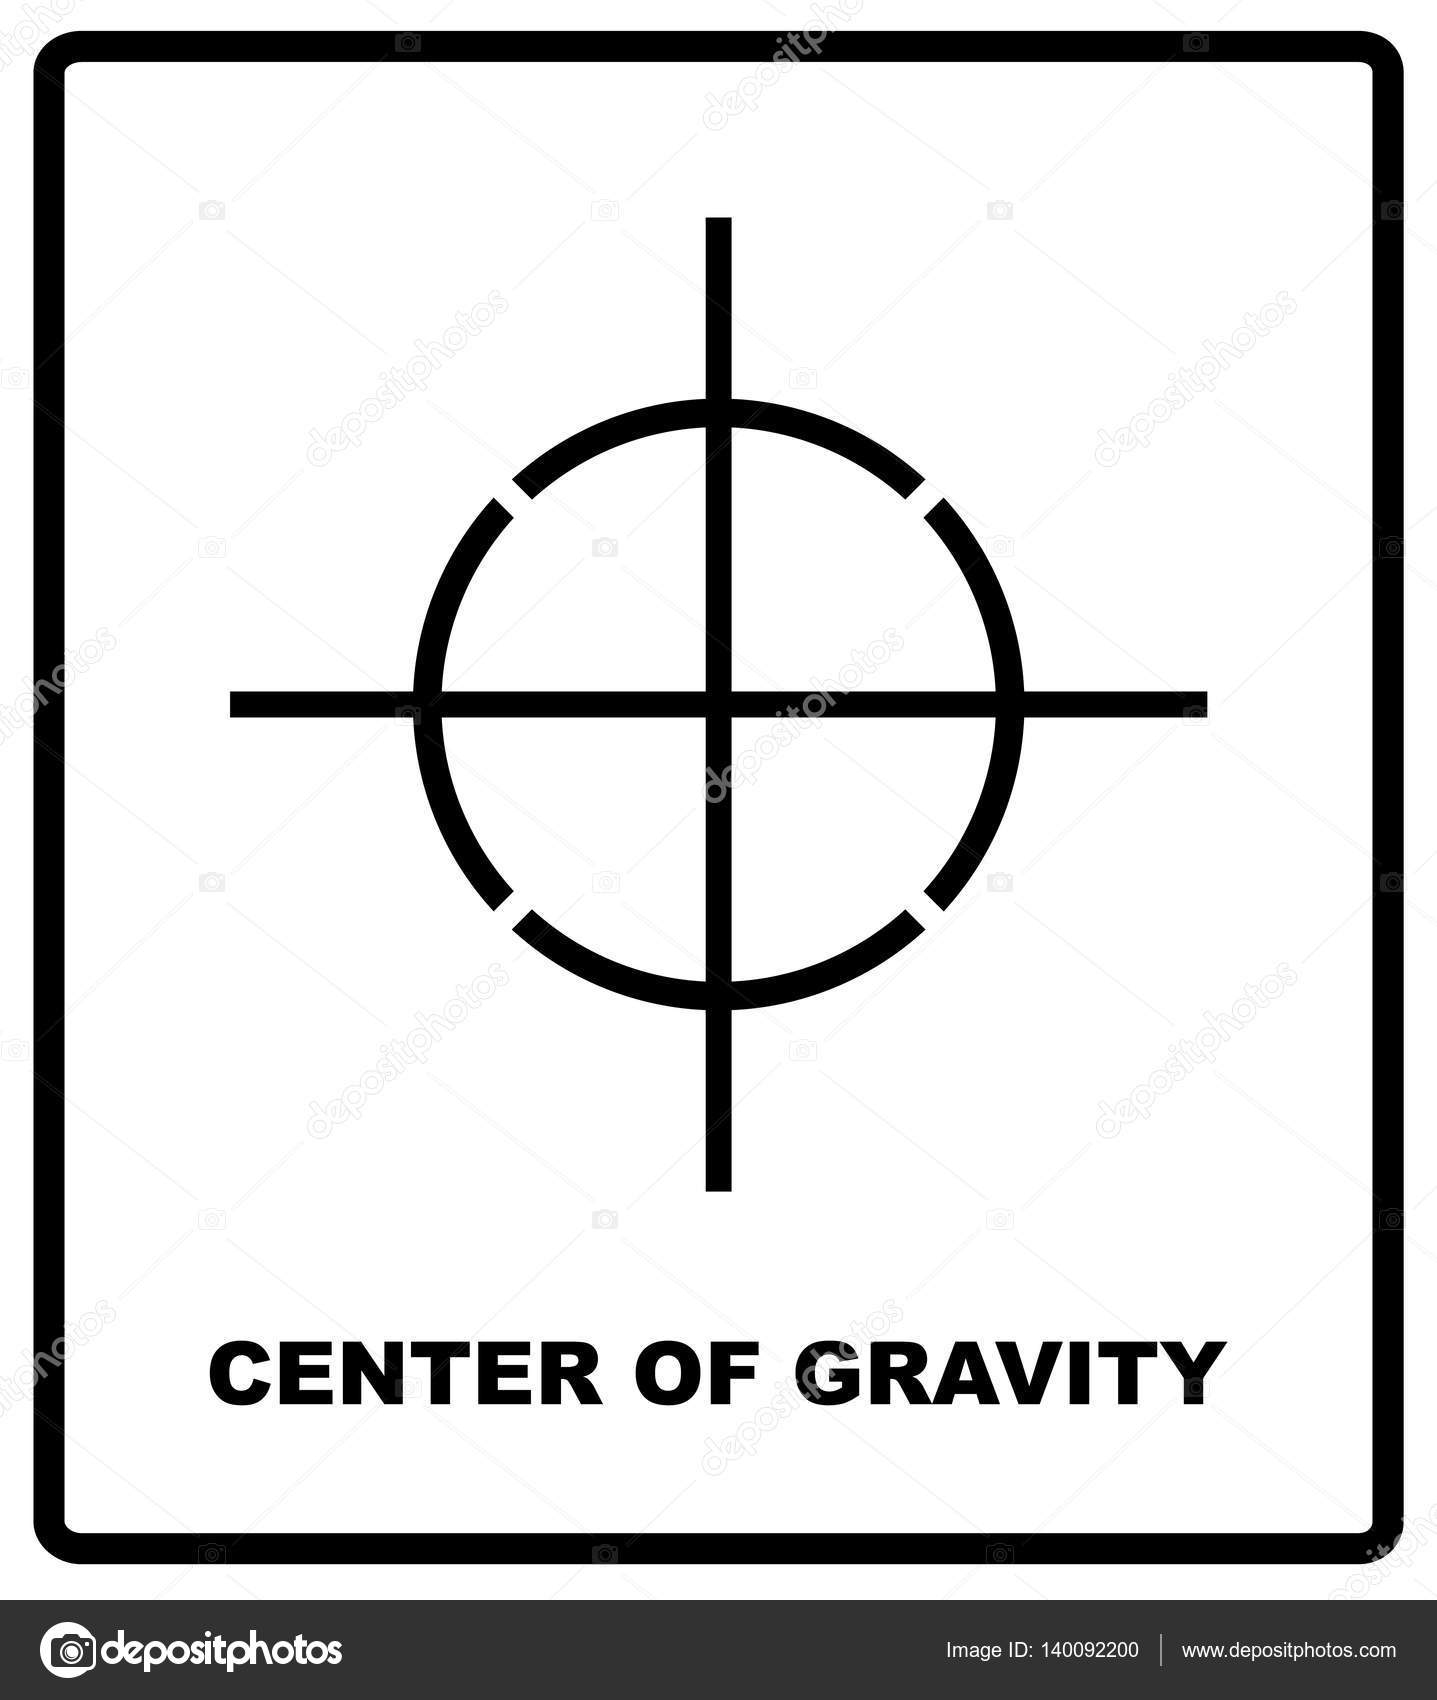 Center of gravity packaging symbol on a corrugated cardboard box center of gravity packaging symbol on a corrugated cardboard box for use on cardboard boxes biocorpaavc Choice Image